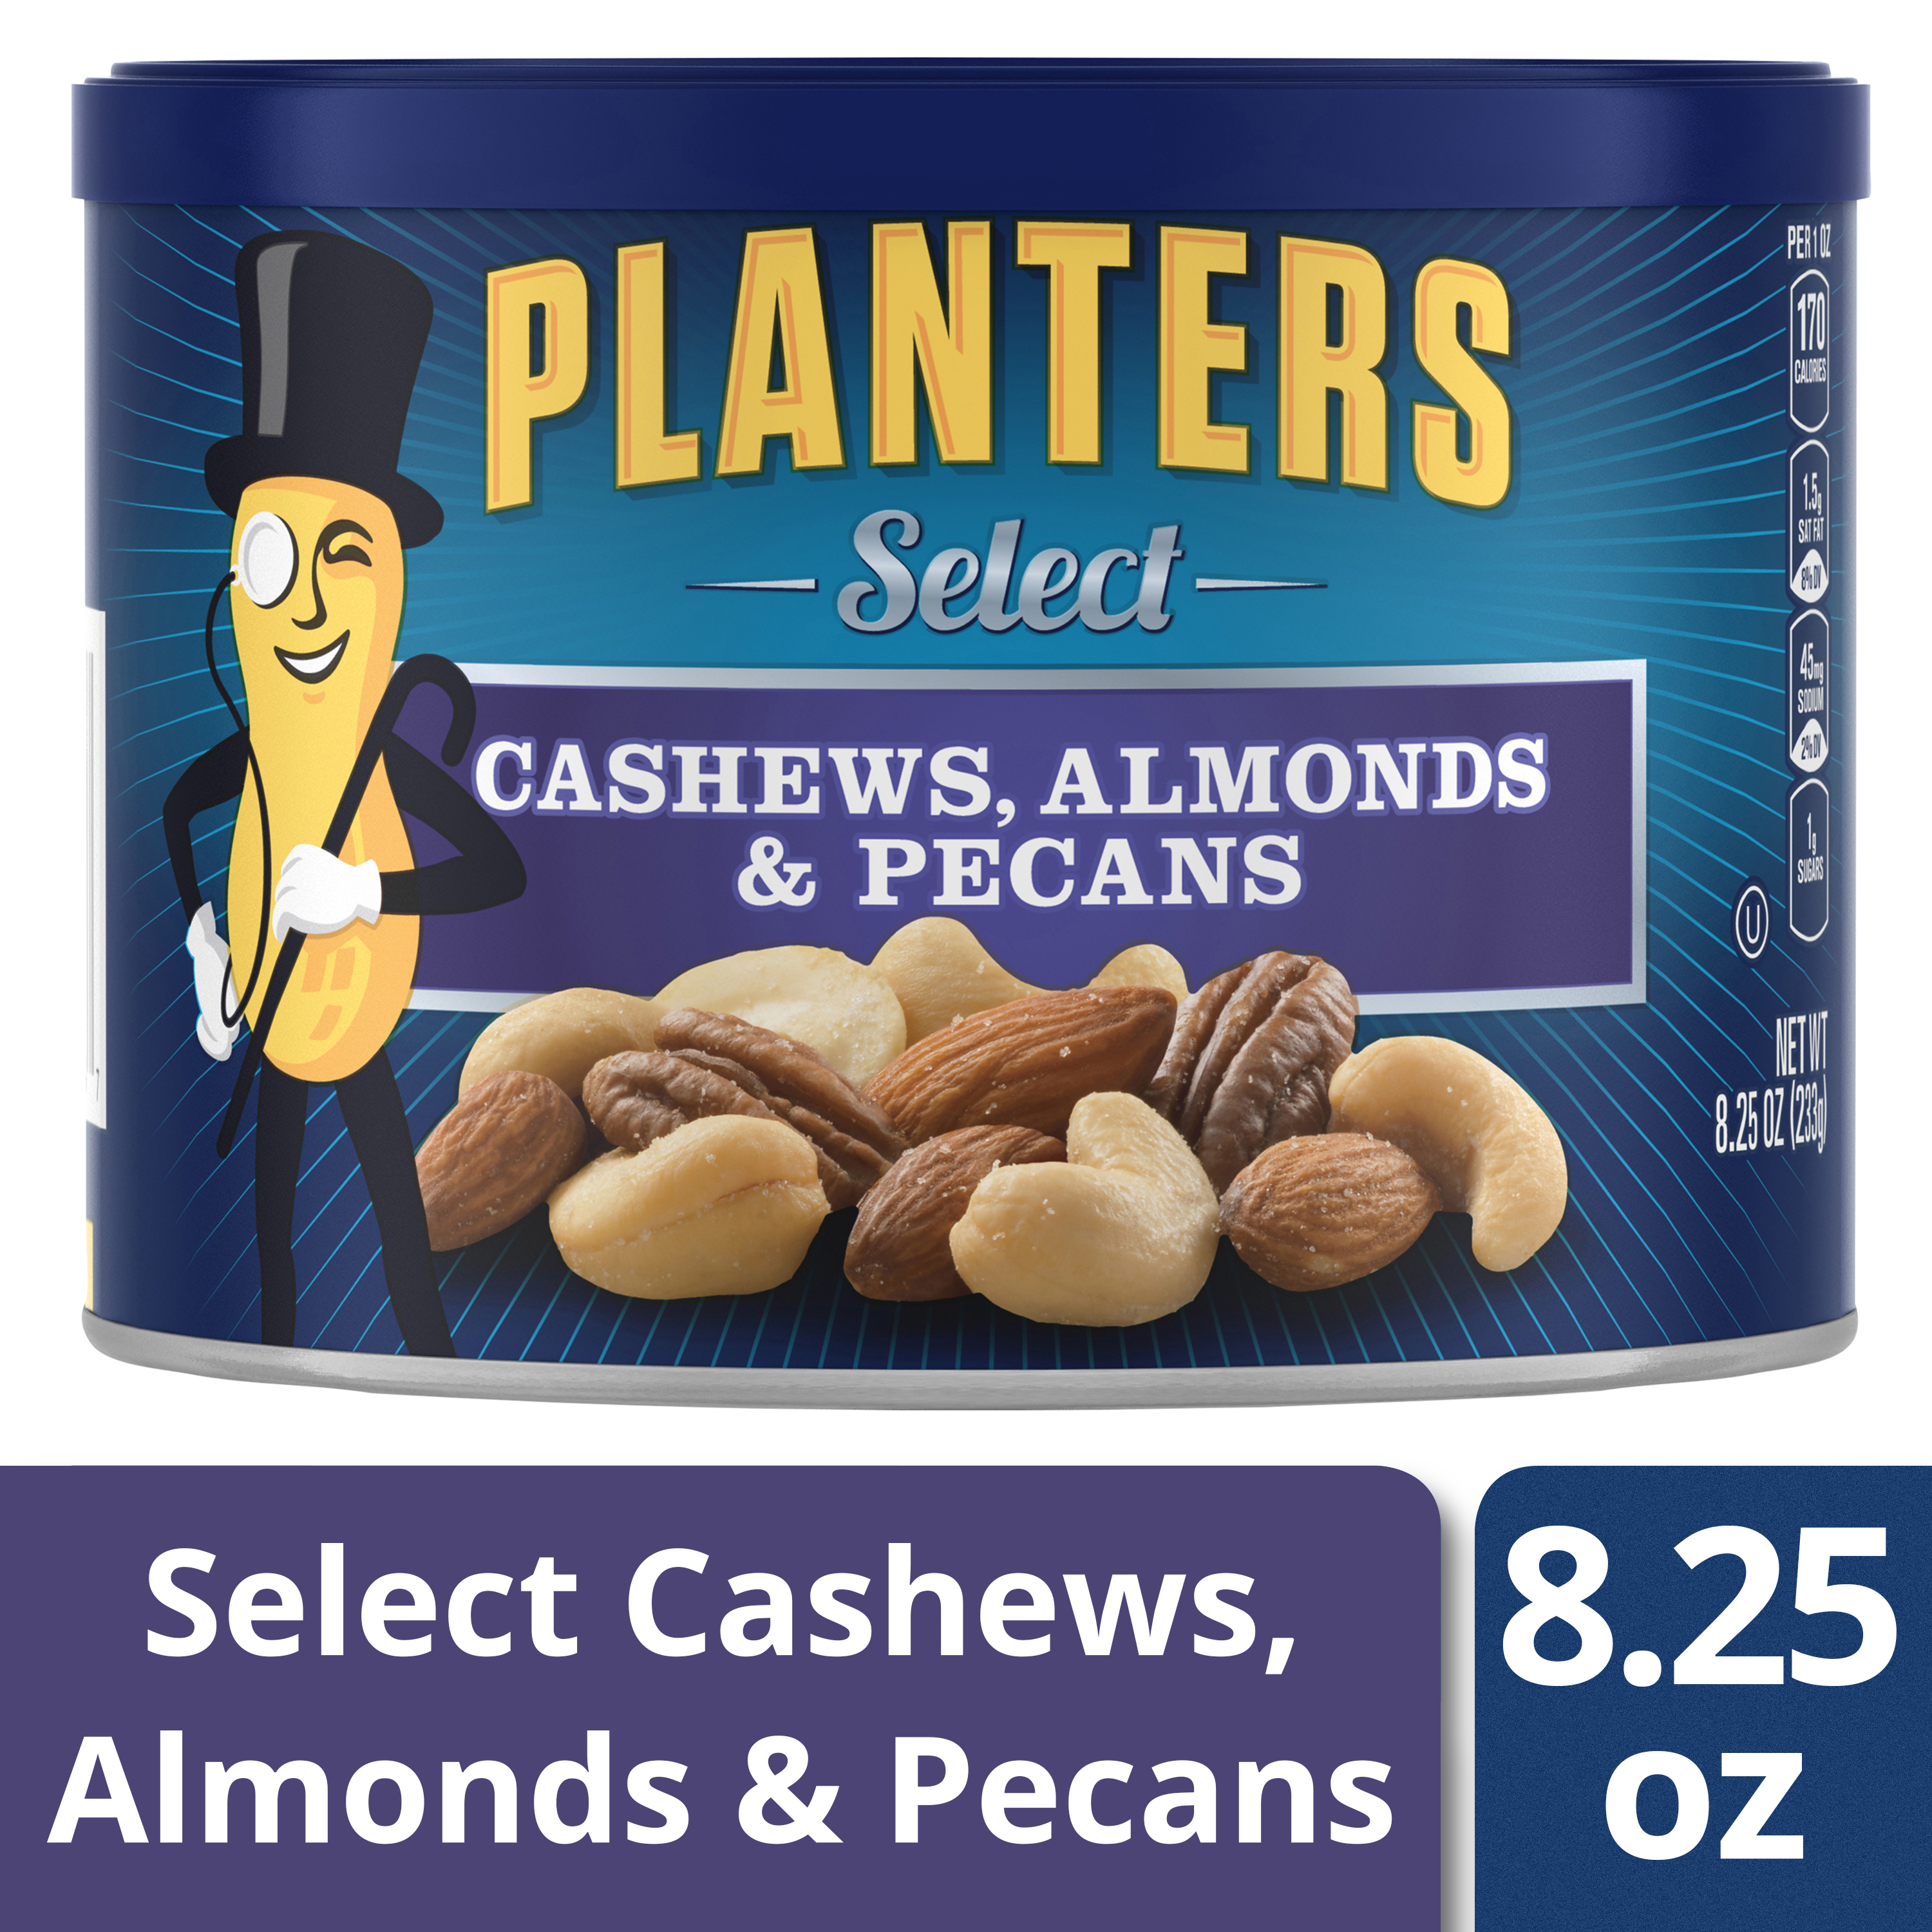 Planters Select Cashews, Almonds & Pecans 8.25 oz Canister